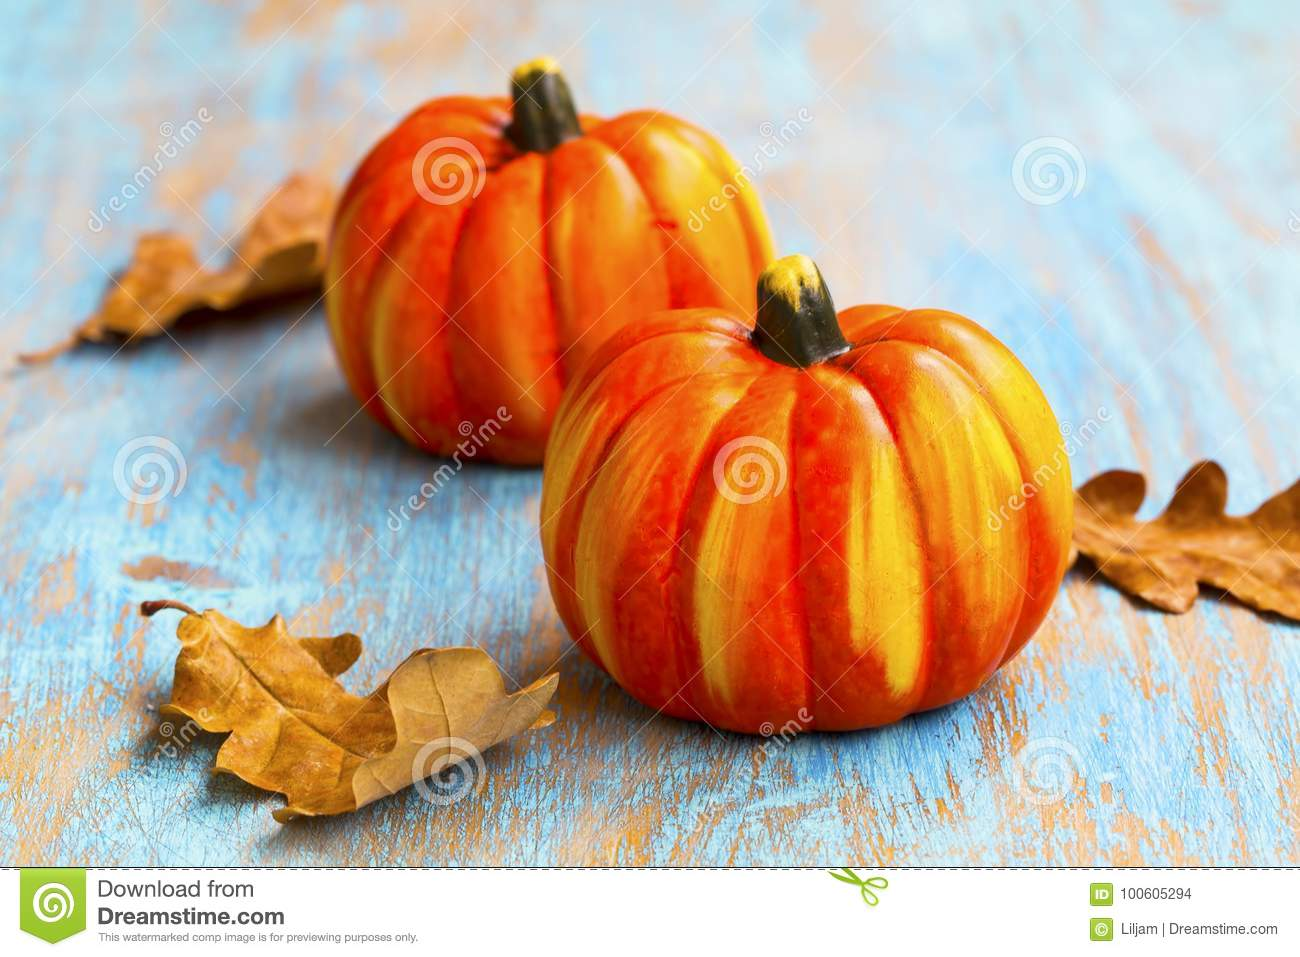 Fall Pumpkins Decorations With Dried Leaves On Old Painted Wood Autumnal Seasonal Setting Decorations Stock Photo Image Of Harvest Fruit 100605294